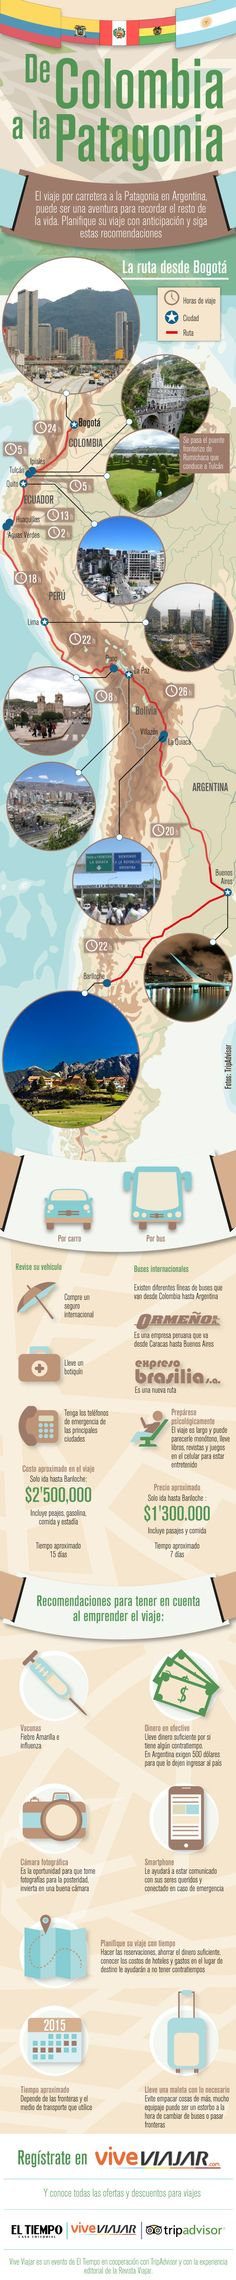 Viaje desde Colombia a la Patagonia en coche- have students plan out their own route using this infographic. They could describe what they would pack, what cities they would stop in, etc